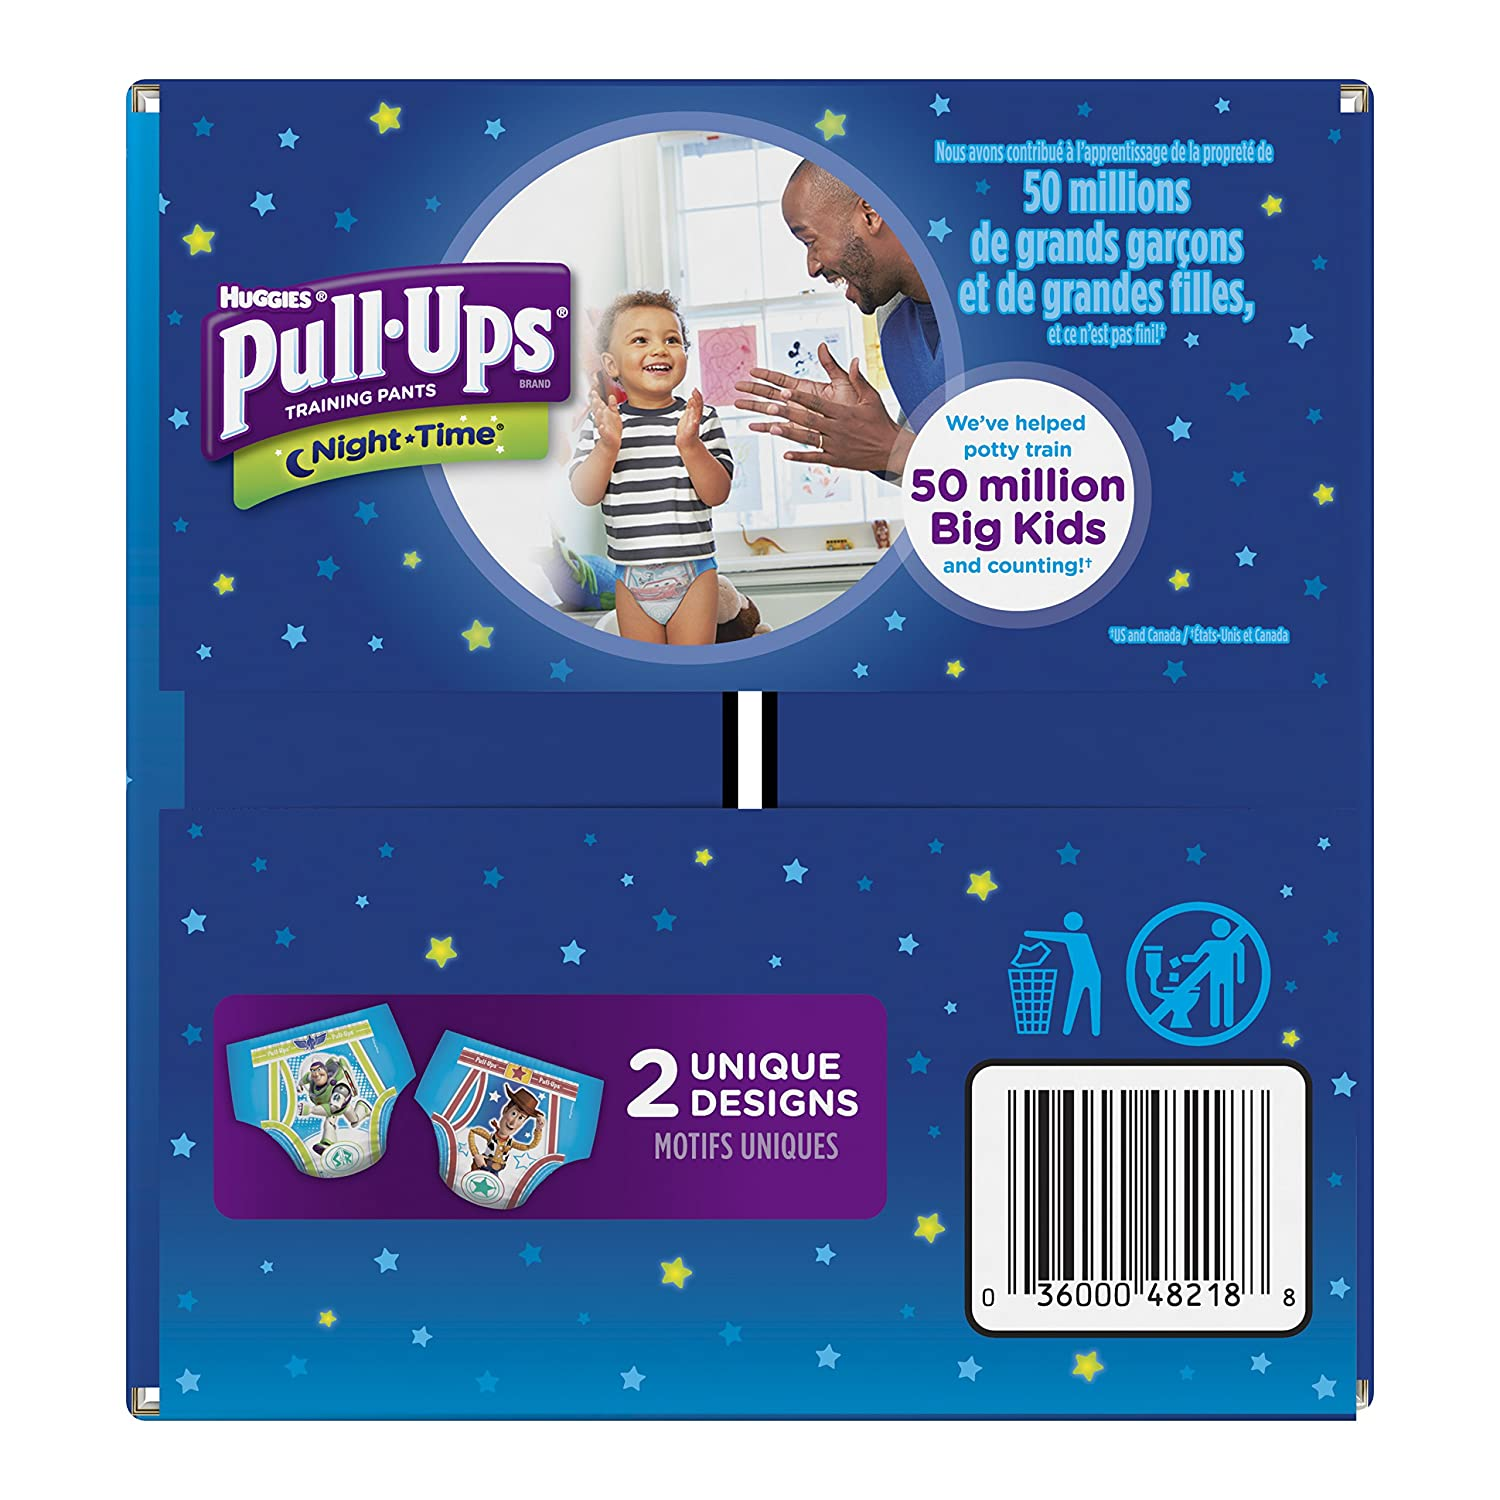 PACK OF 2 2T-3T 100 total pants Packaging May Vary 50 Ct 18-34 lb. Pull-Ups Night-Time Potty Training Pants for Boys